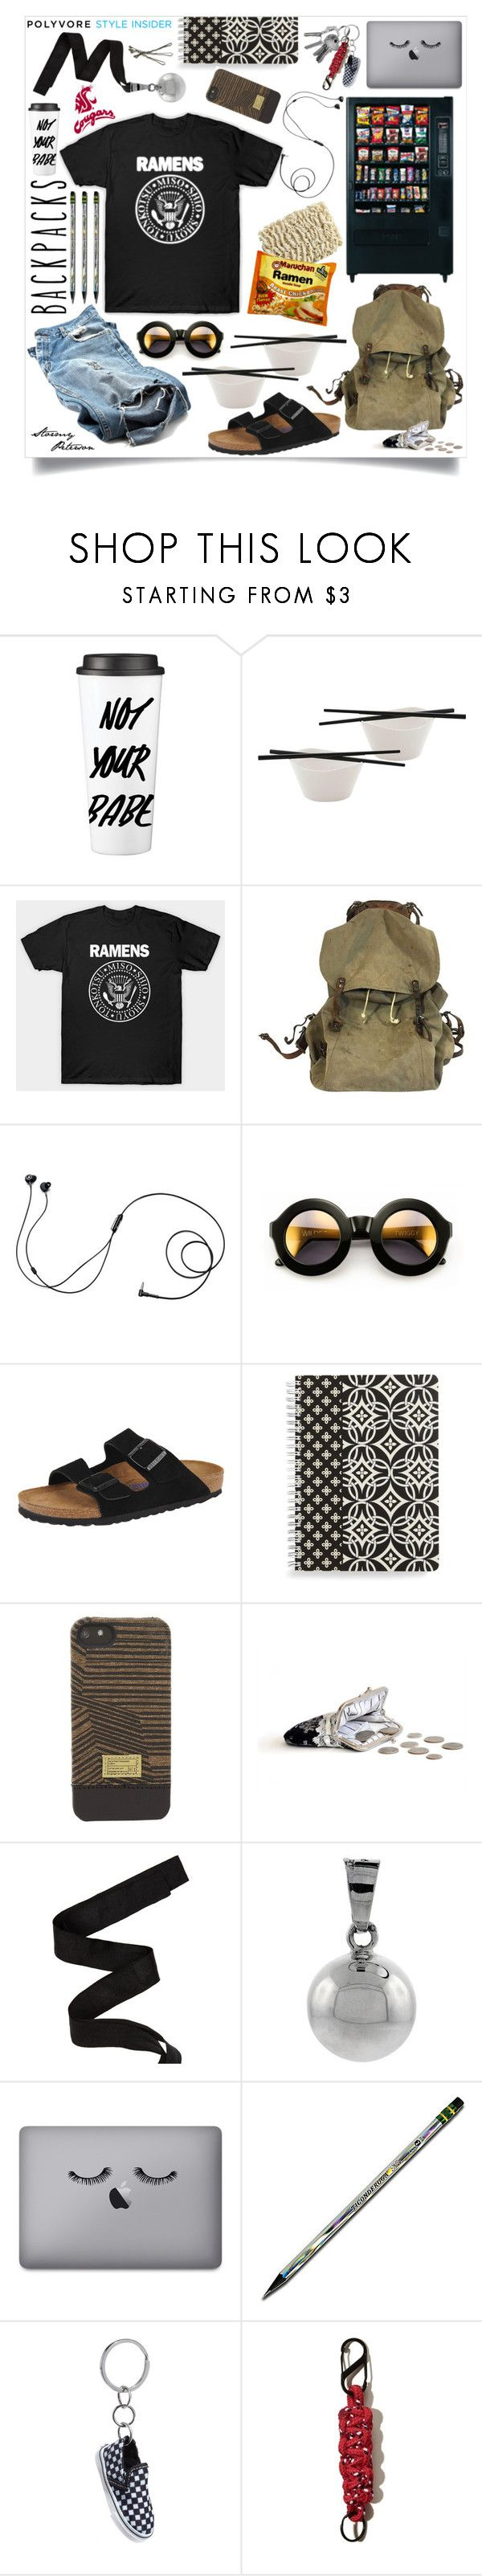 """*I Wanna Be Sedated* Rule School: Cool Backpacks - College Edition"" by stormypeterson ❤ liked on Polyvore featuring BergHOFF, sOUP, Marshall, Wildfox, Birkenstock, Vera Bradley, HEX, Oscar de la Renta, Harmony Ball Company and Vans"